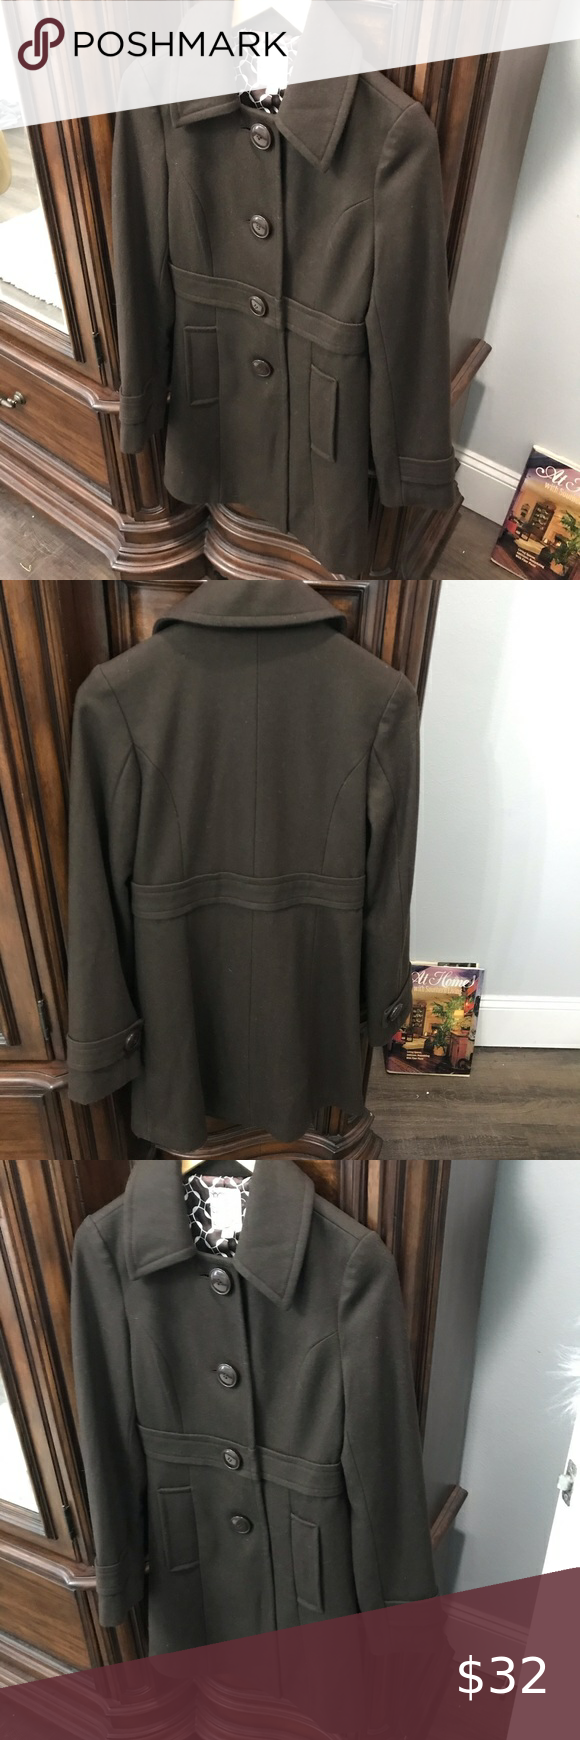 ANTHROPOLOGIE TULLE BROWN PEA COAT. SIZE: SMALL